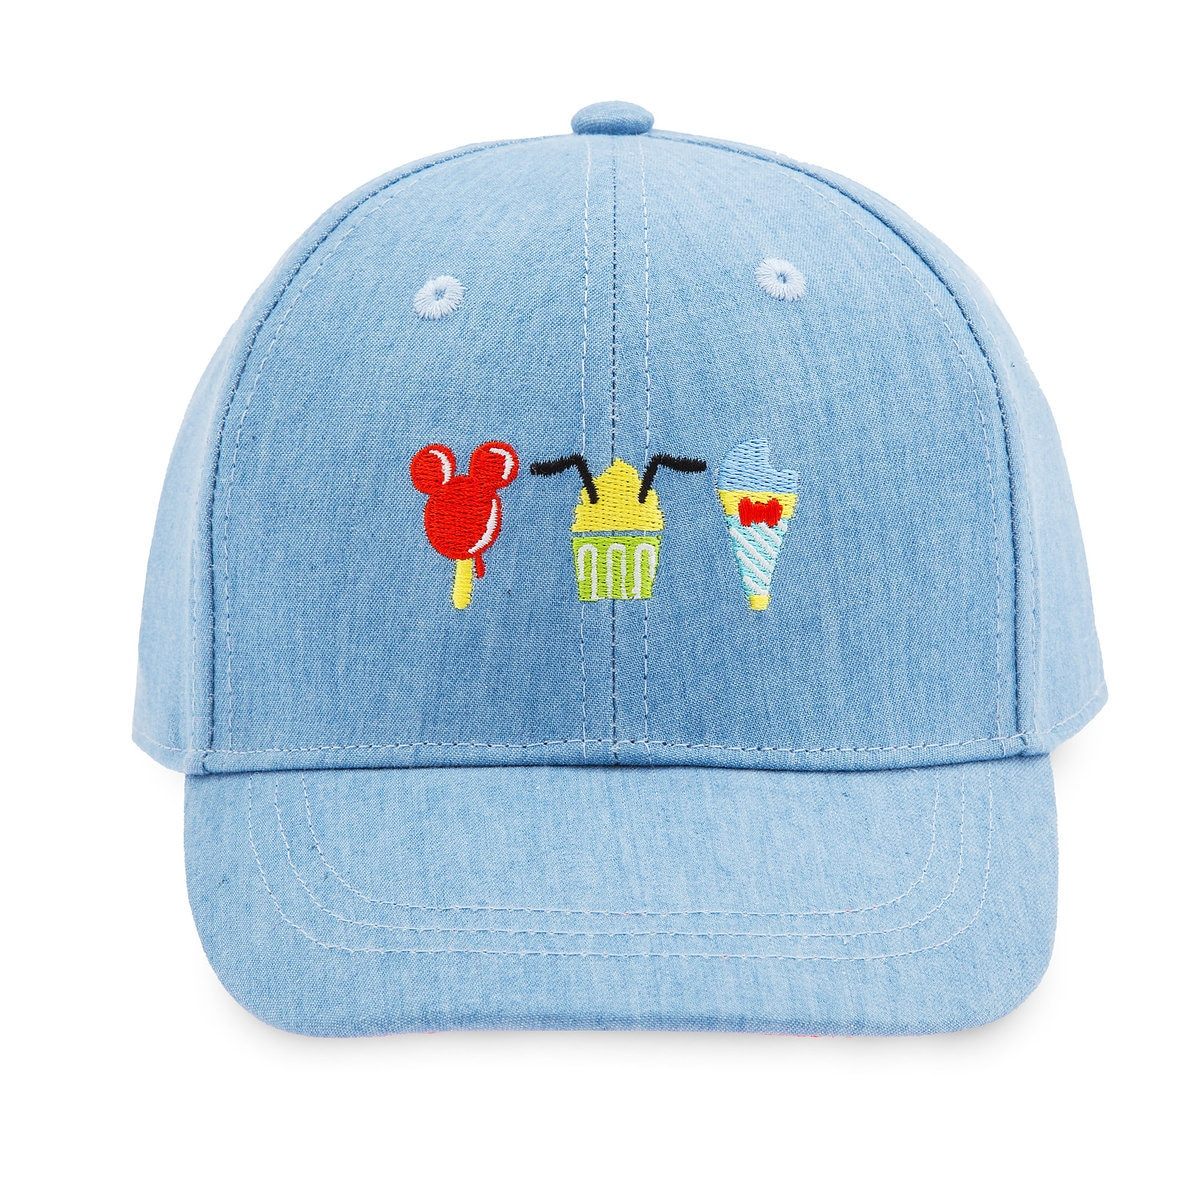 8da32e724cc4c Product Image of Mickey Mouse and Friends Summer Fun Baseball Cap for Kids    1